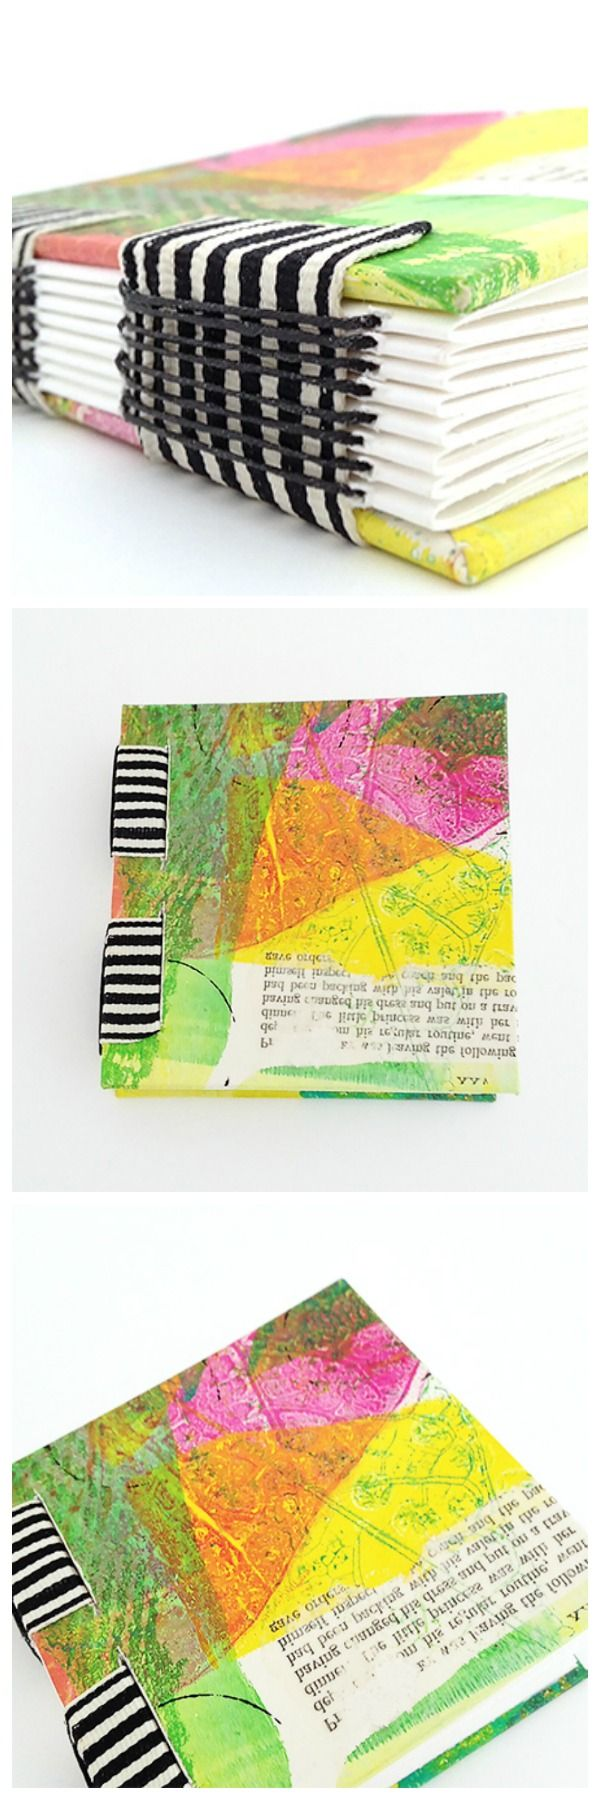 "Mini 4"" x 4"" book with a #gelli print cover and ribbon binding."